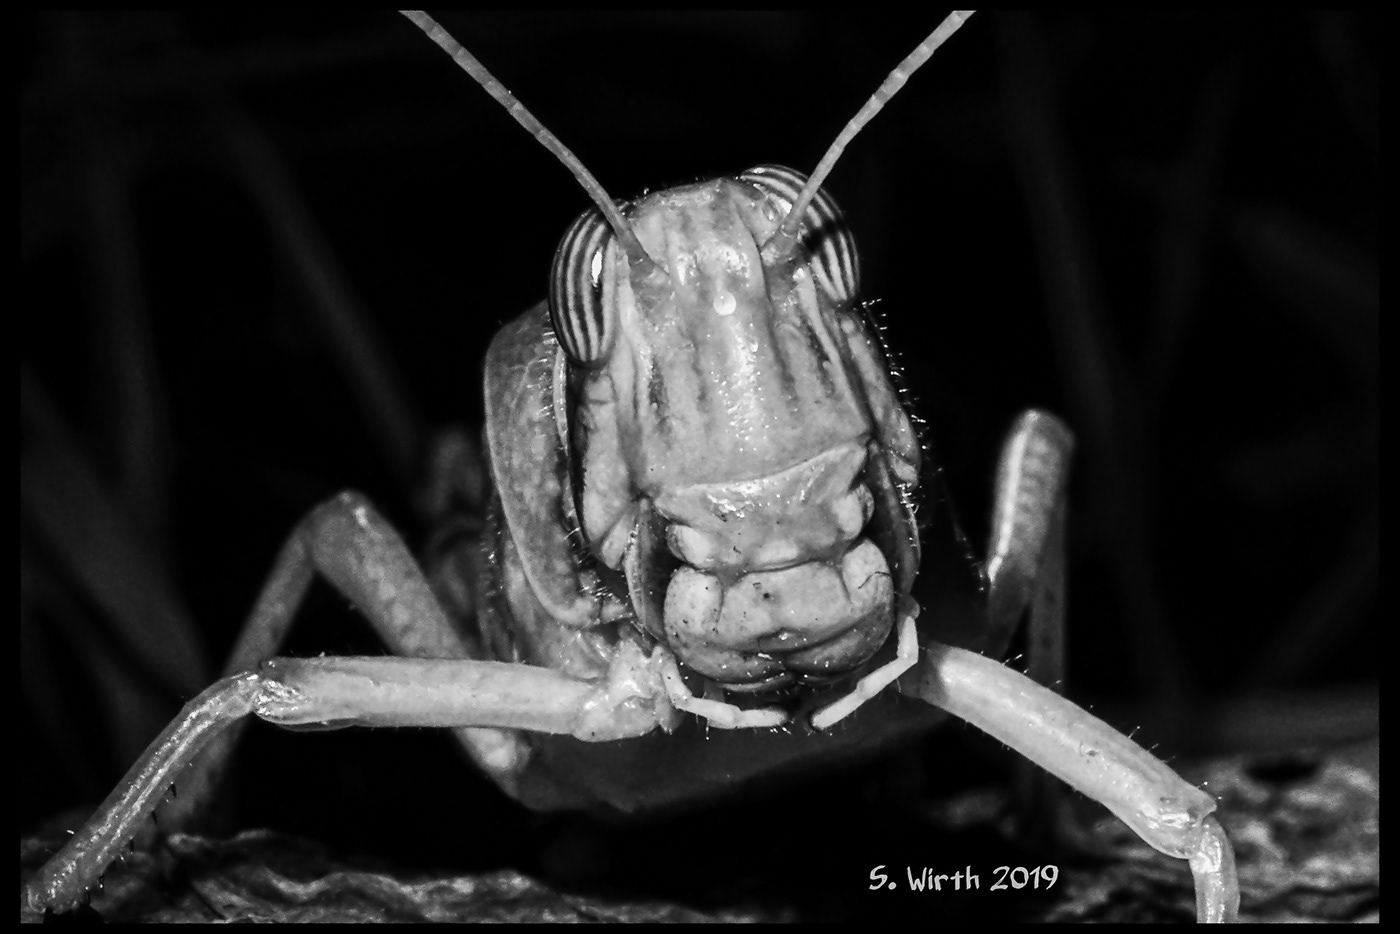 Schistocerca gregaria Adult portrait eyes Mouth insect macro close-up Variations dark background Studio Photography berlin November 2019 Stefan F. Wirth Nature